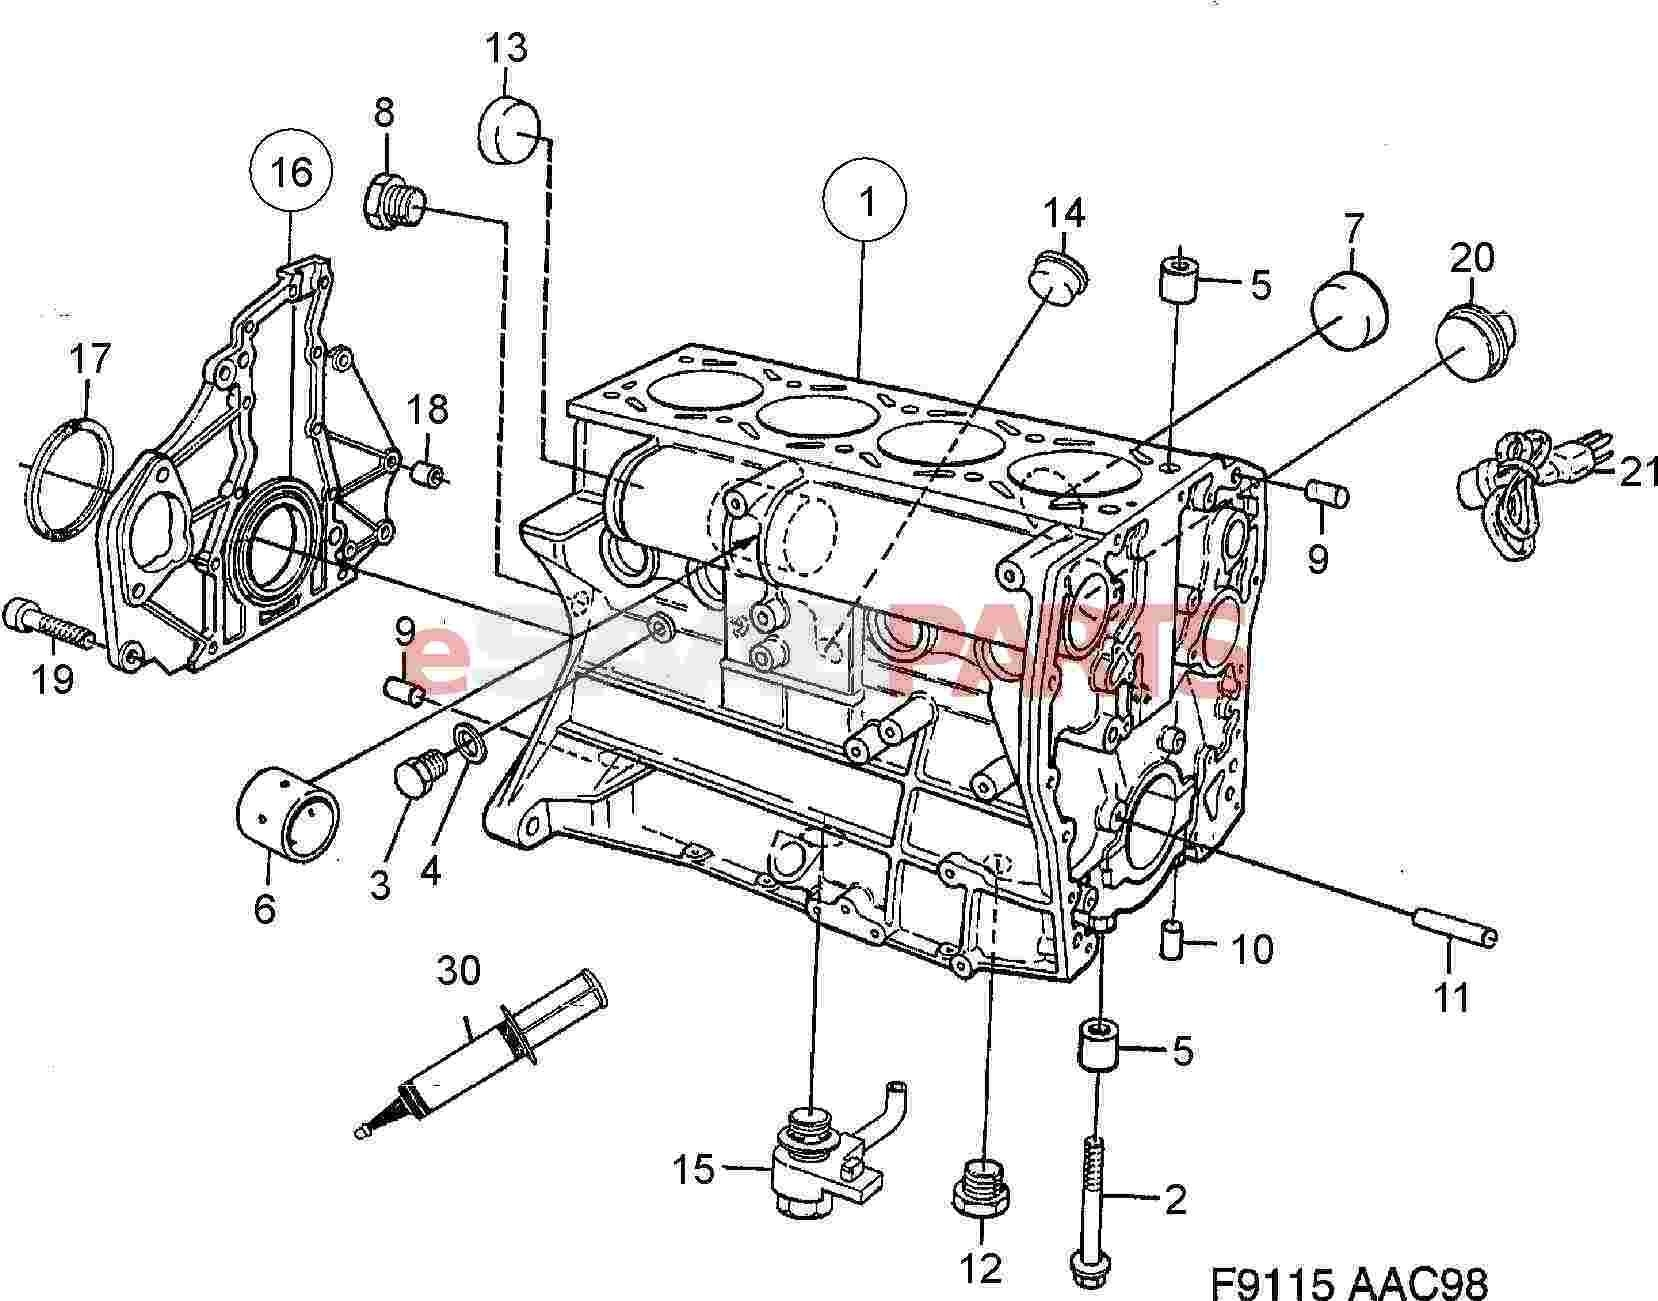 2001 Saab 9 3 Vacuum Diagram Trusted Wiring Diagrams 5 93 Hose Explained Convertible